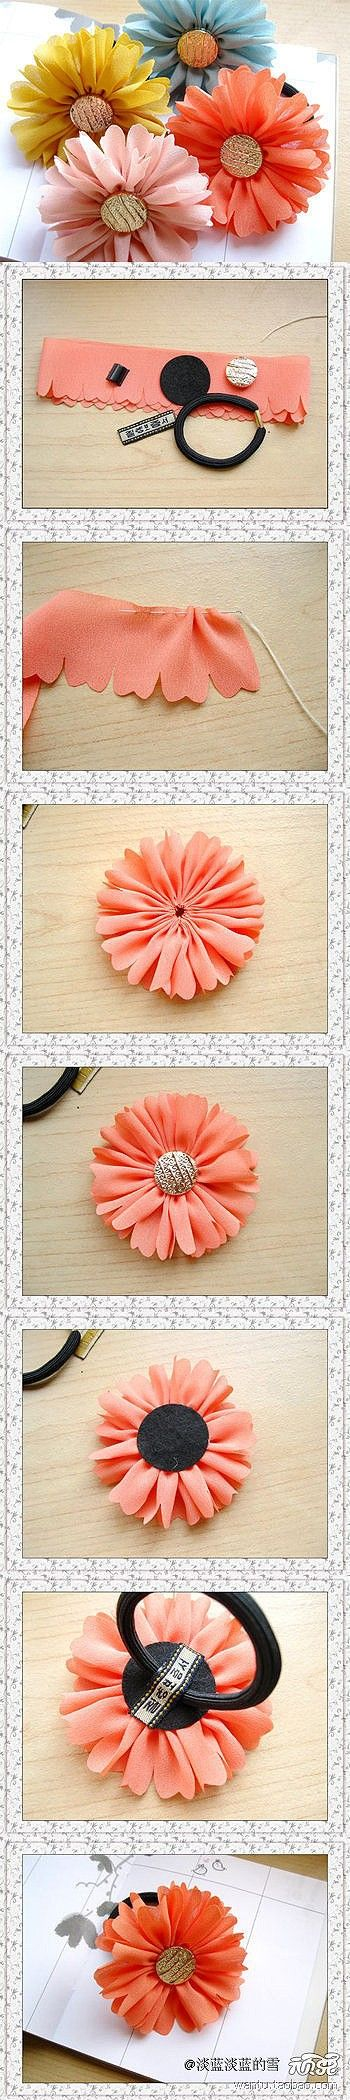 Hand-made hair accessories handmade accessories handmade tutorial materials: about 70cm long chiffon lace, buttons, cloth, ...